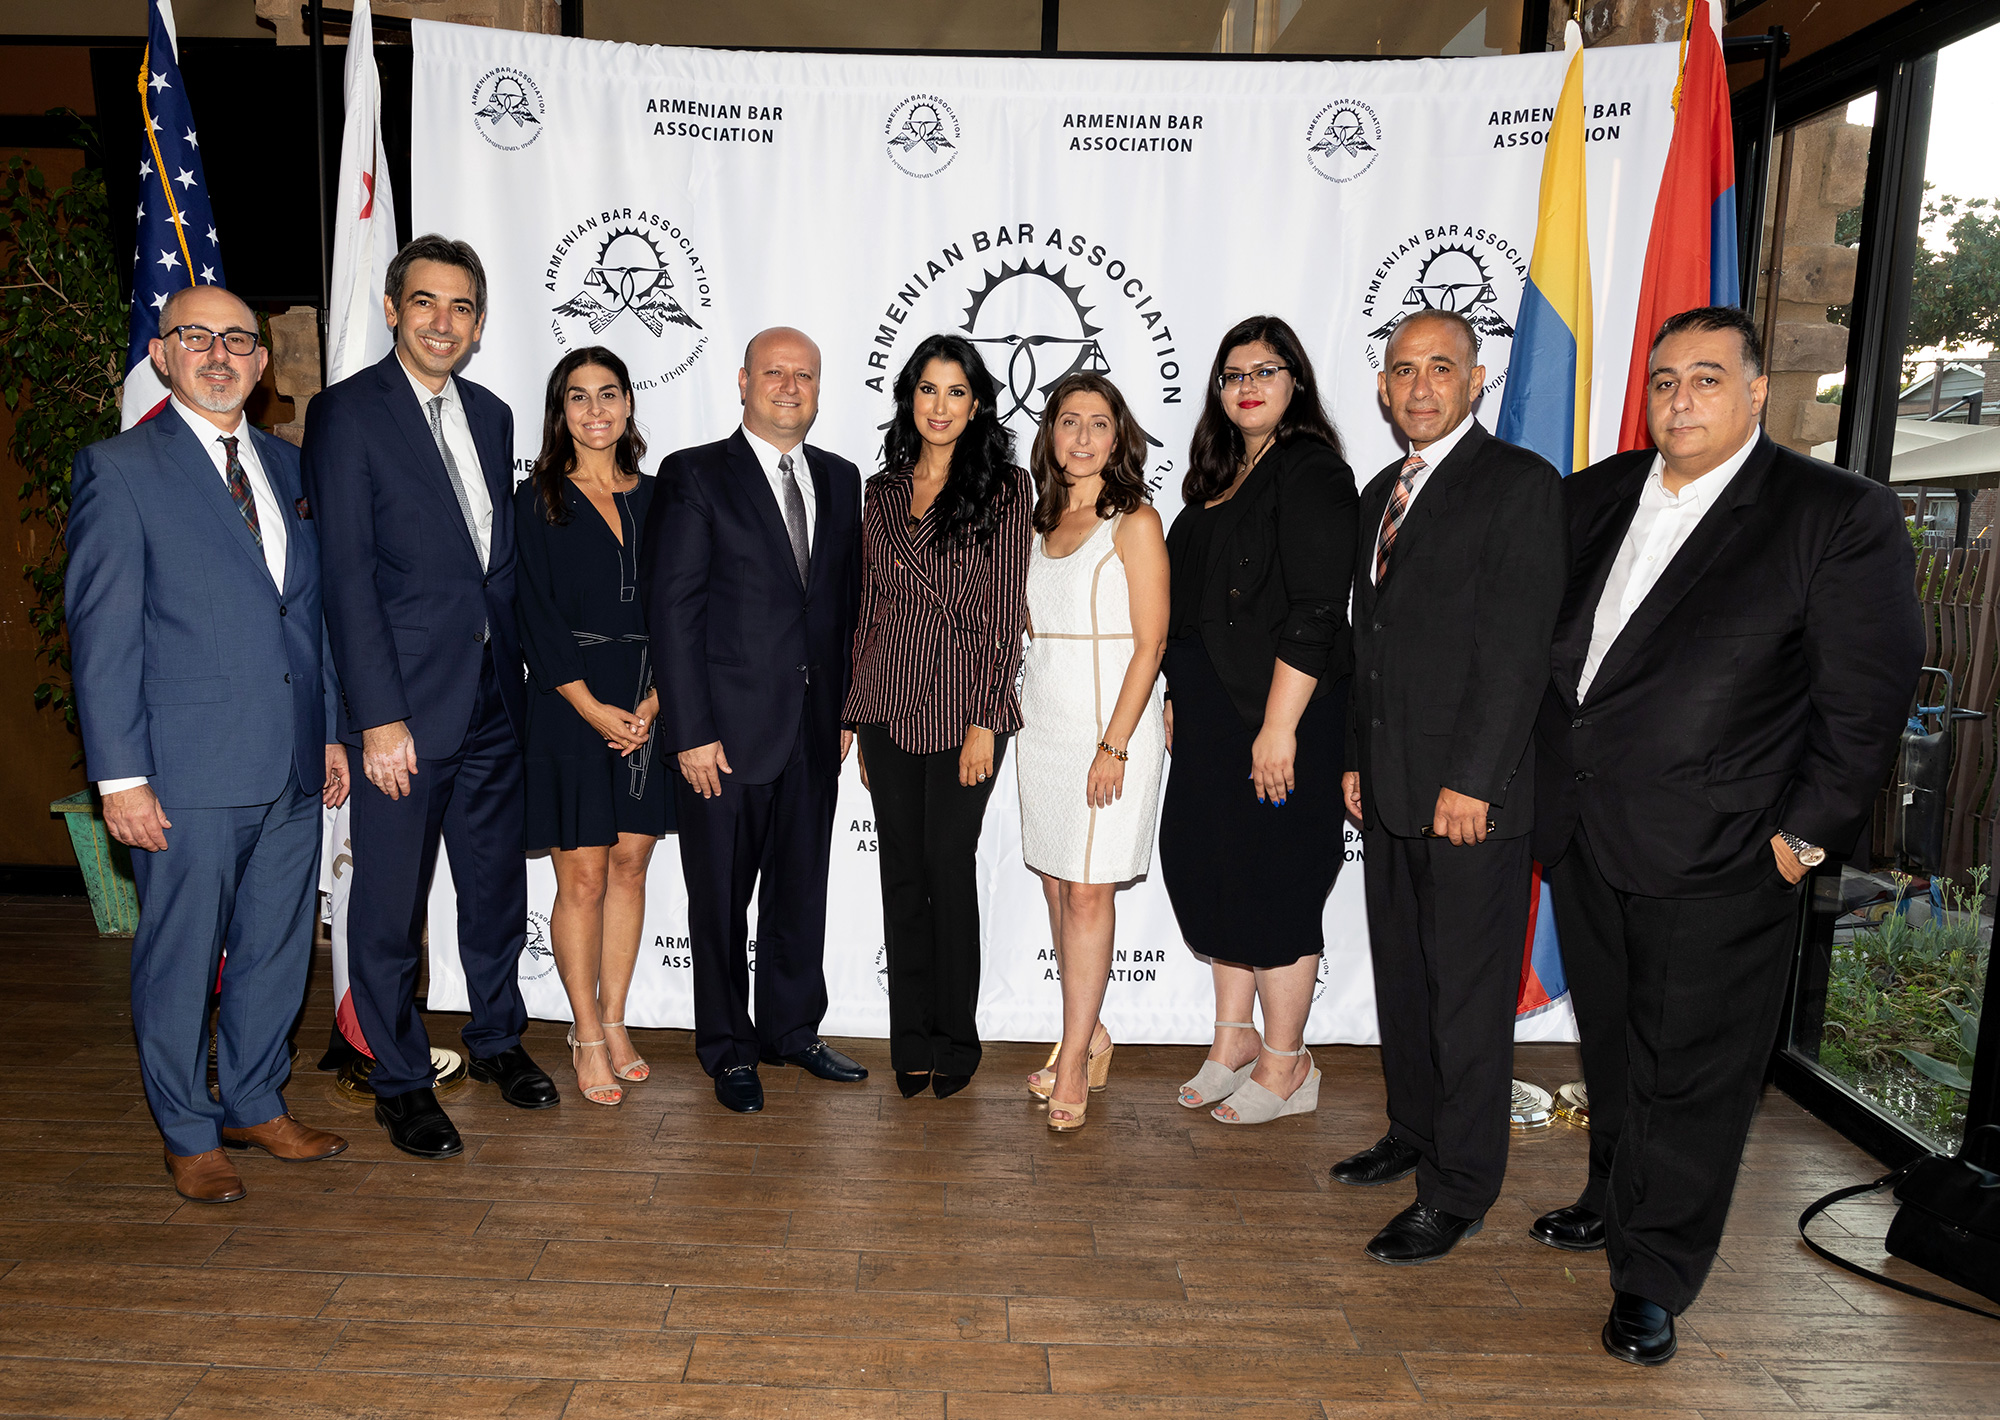 Armenian Bar Association Workers' Compensation Judges Night 2018